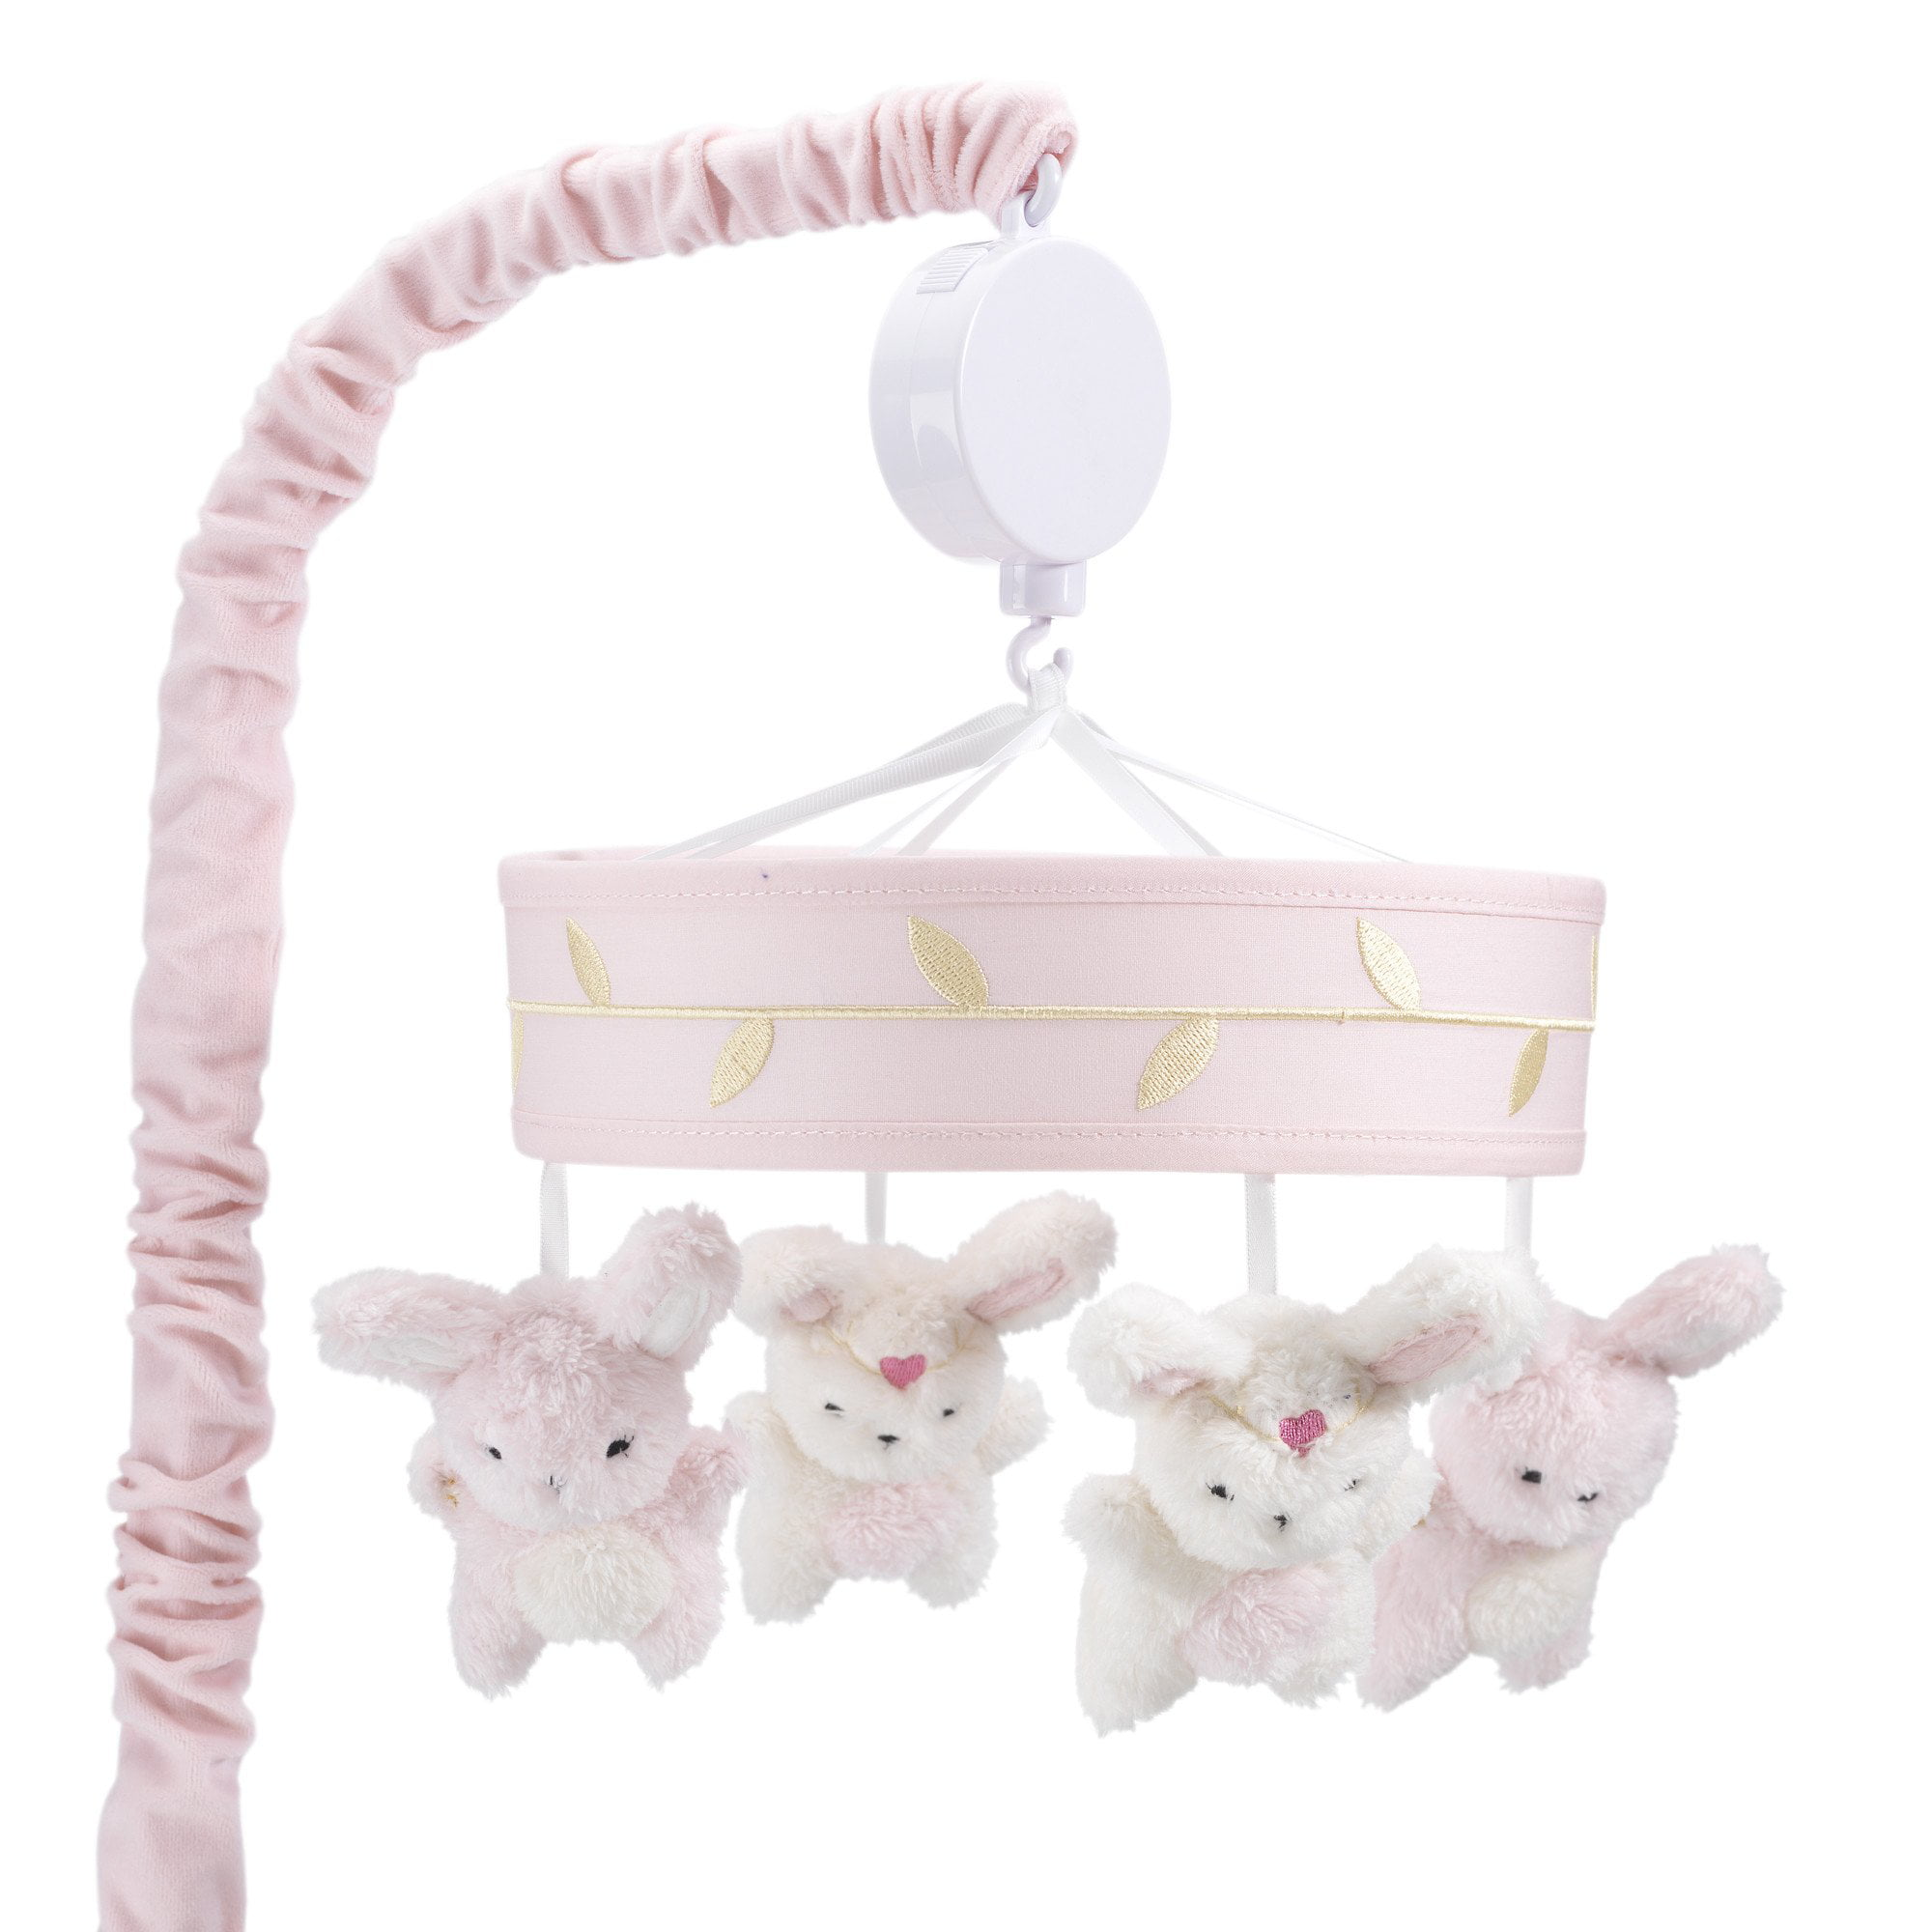 Lambs & Ivy Confetti Pink Gold White Bunny Musical Baby Crib Mobile by Lambs %26 Ivy